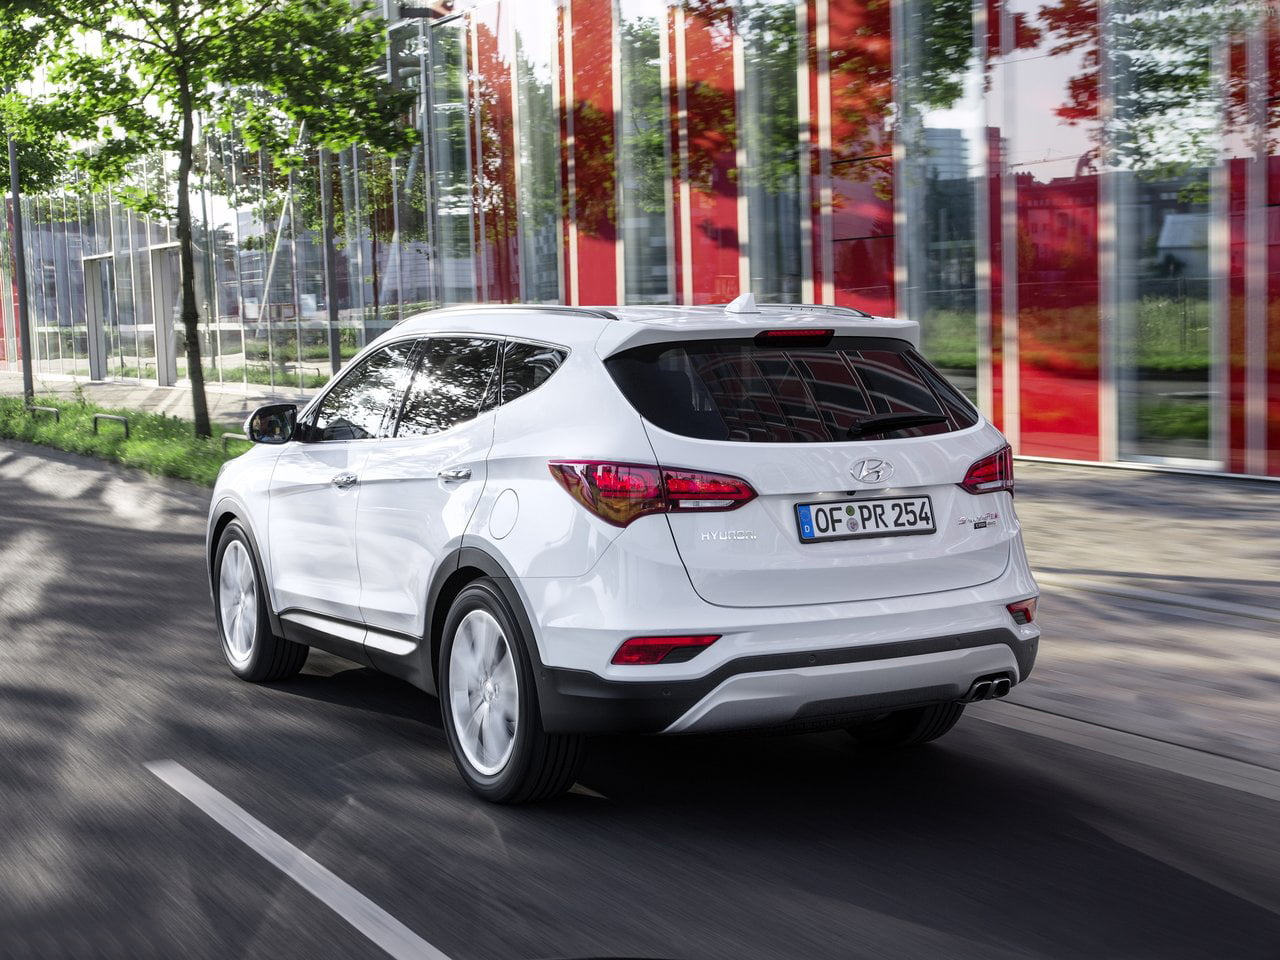 new hyundai santa fe 2016 facelift pics features specs. Black Bedroom Furniture Sets. Home Design Ideas